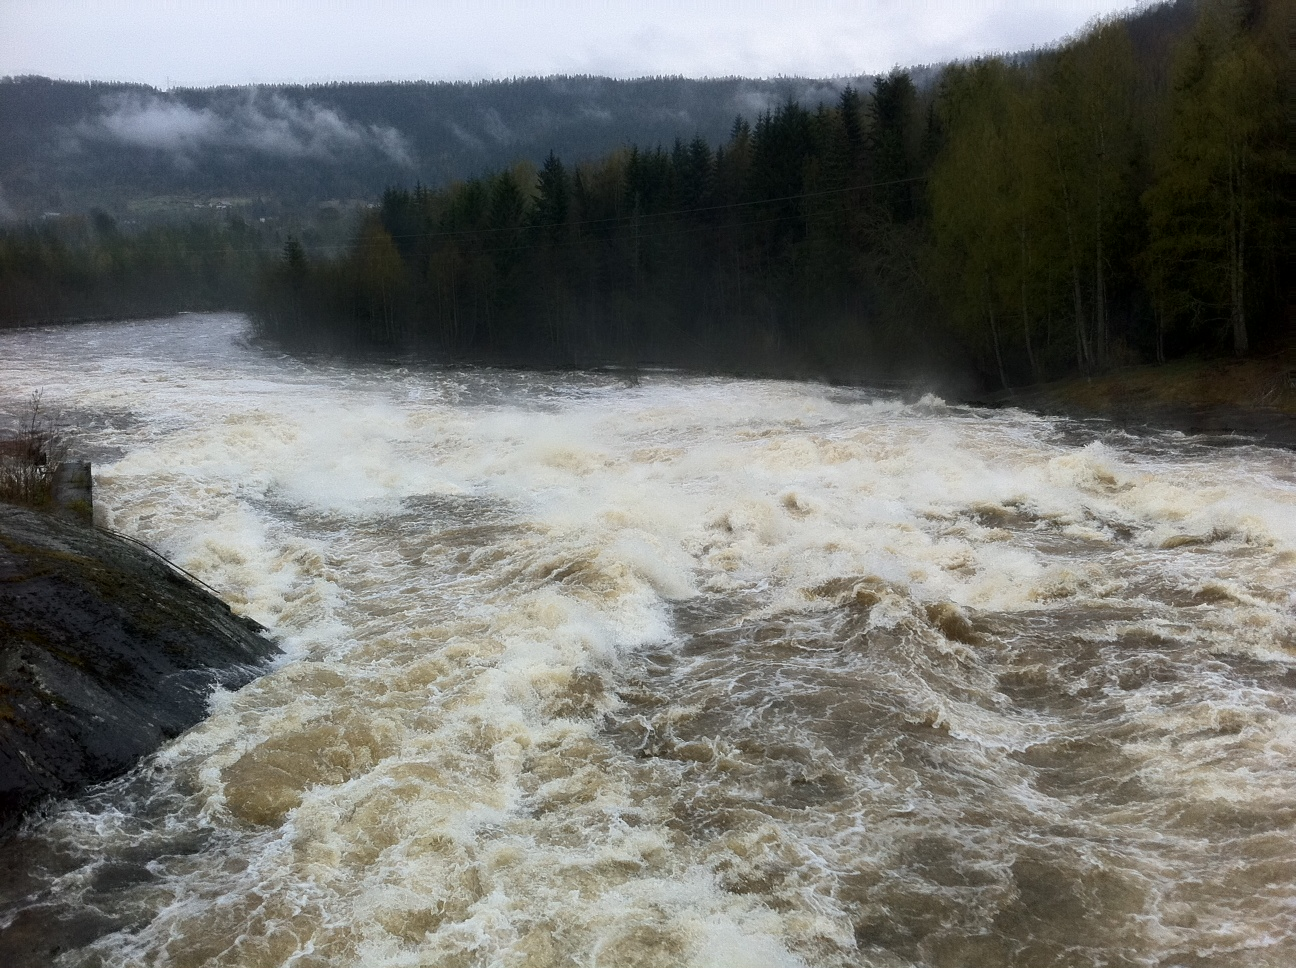 Vann i Omnesfossen